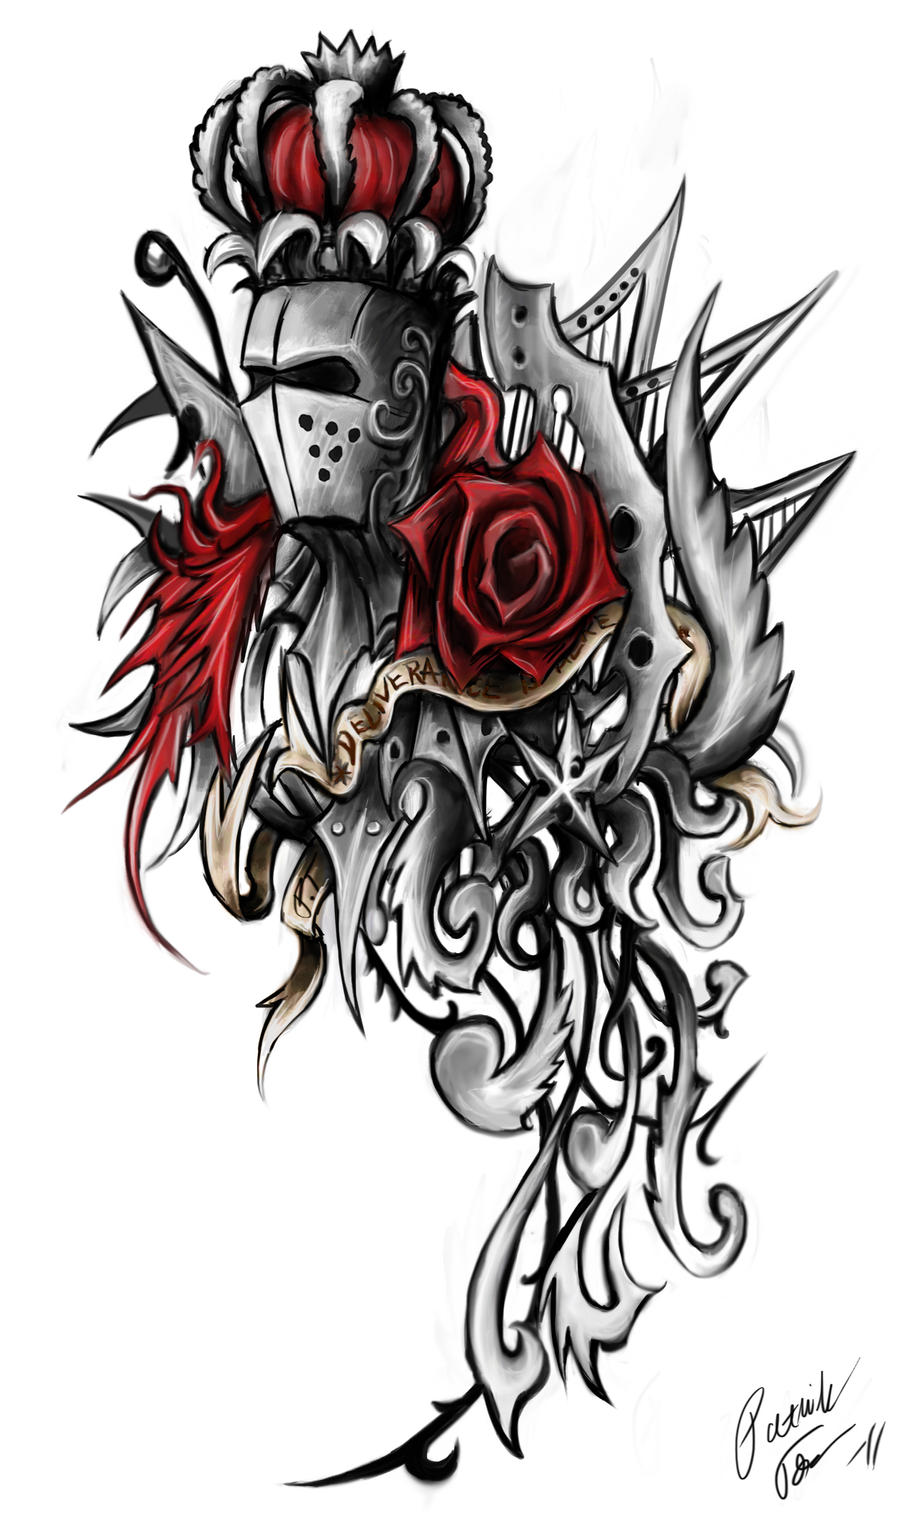 Rose knight ornament tattoo by Patrike on DeviantArt